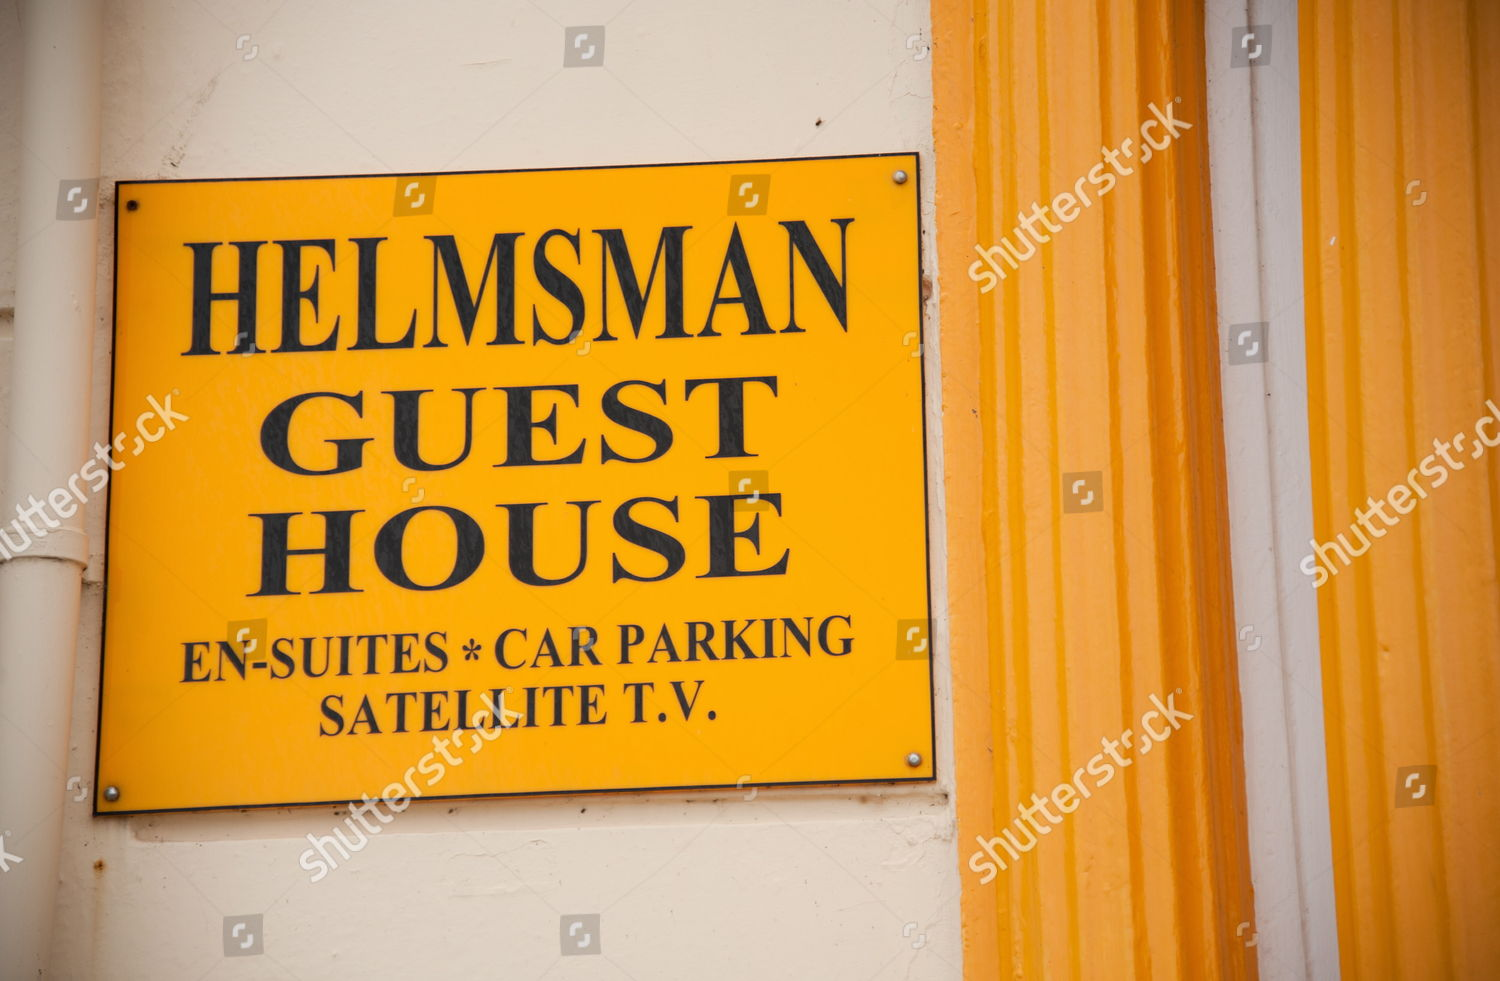 Helmsman Guest House Editorial Stock Photo - Stock Image